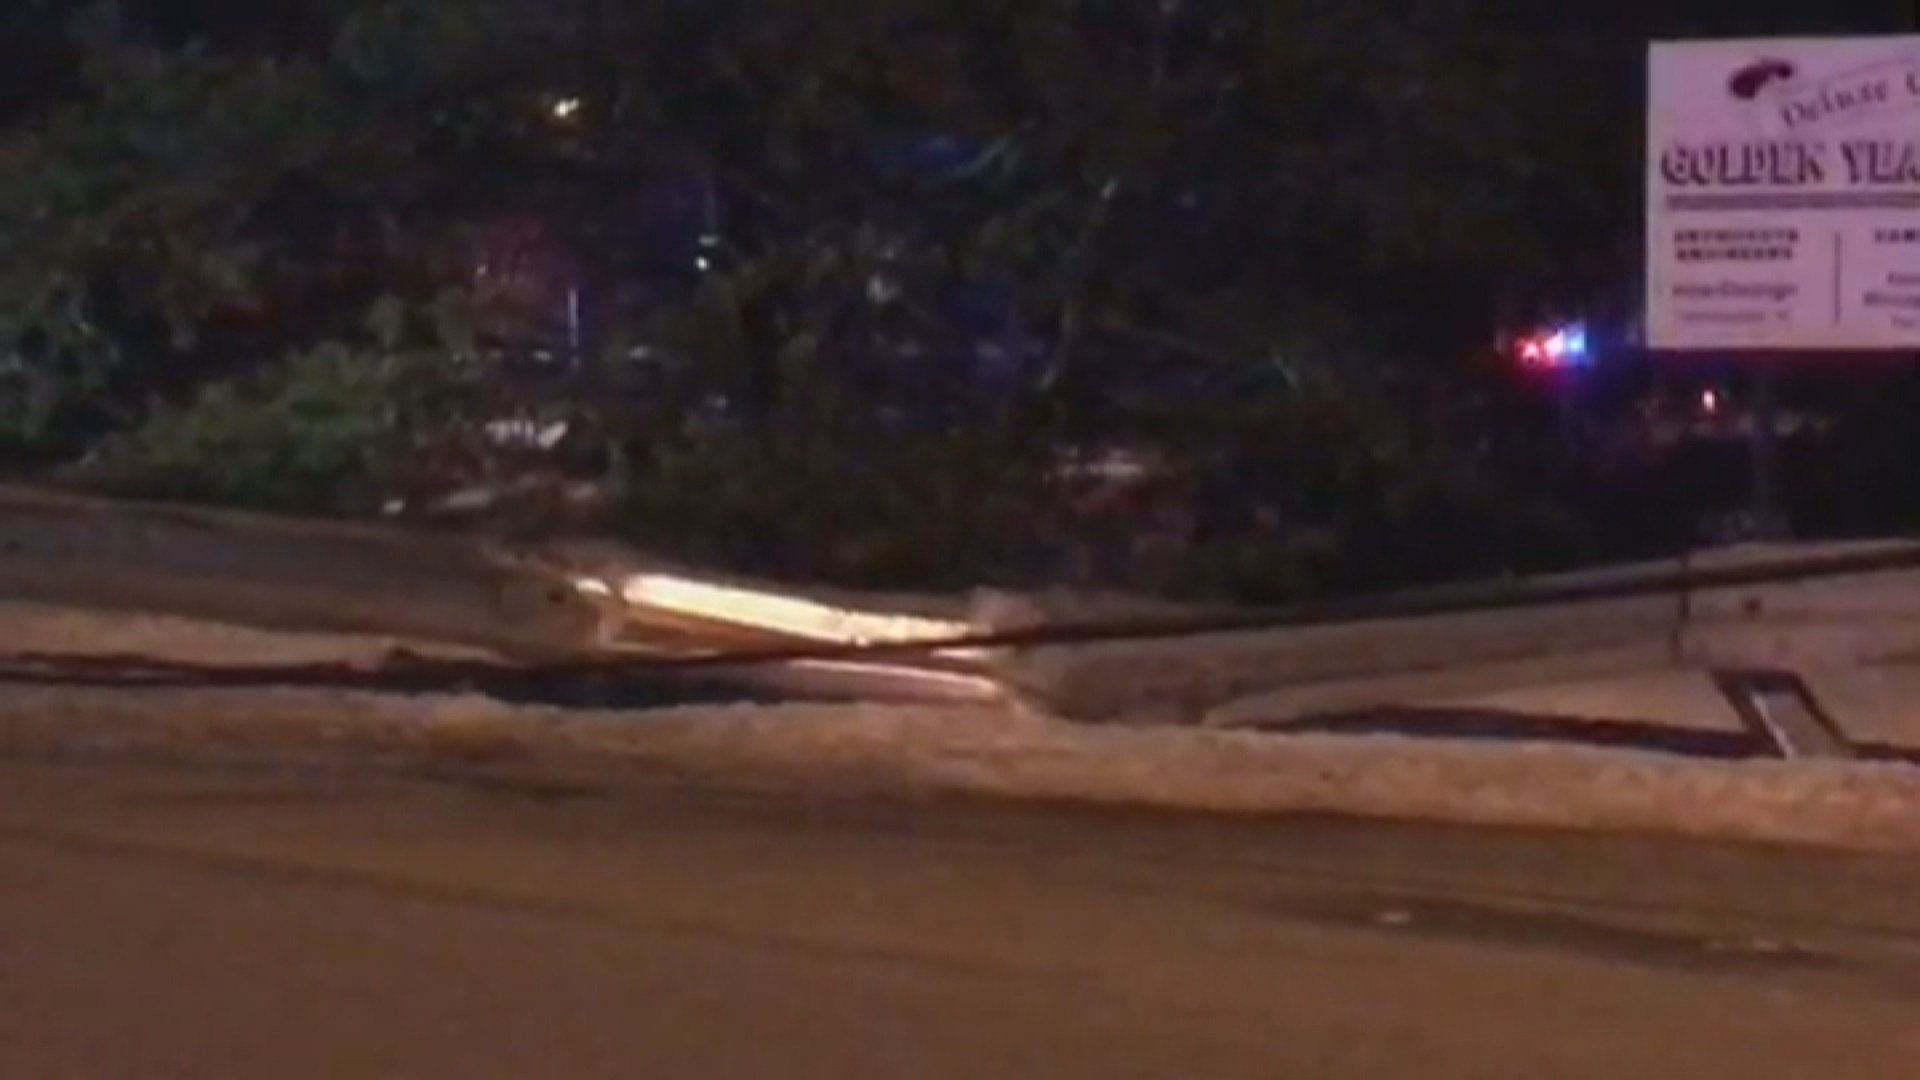 Scene of the crash where a pole was knocked down along with wires.